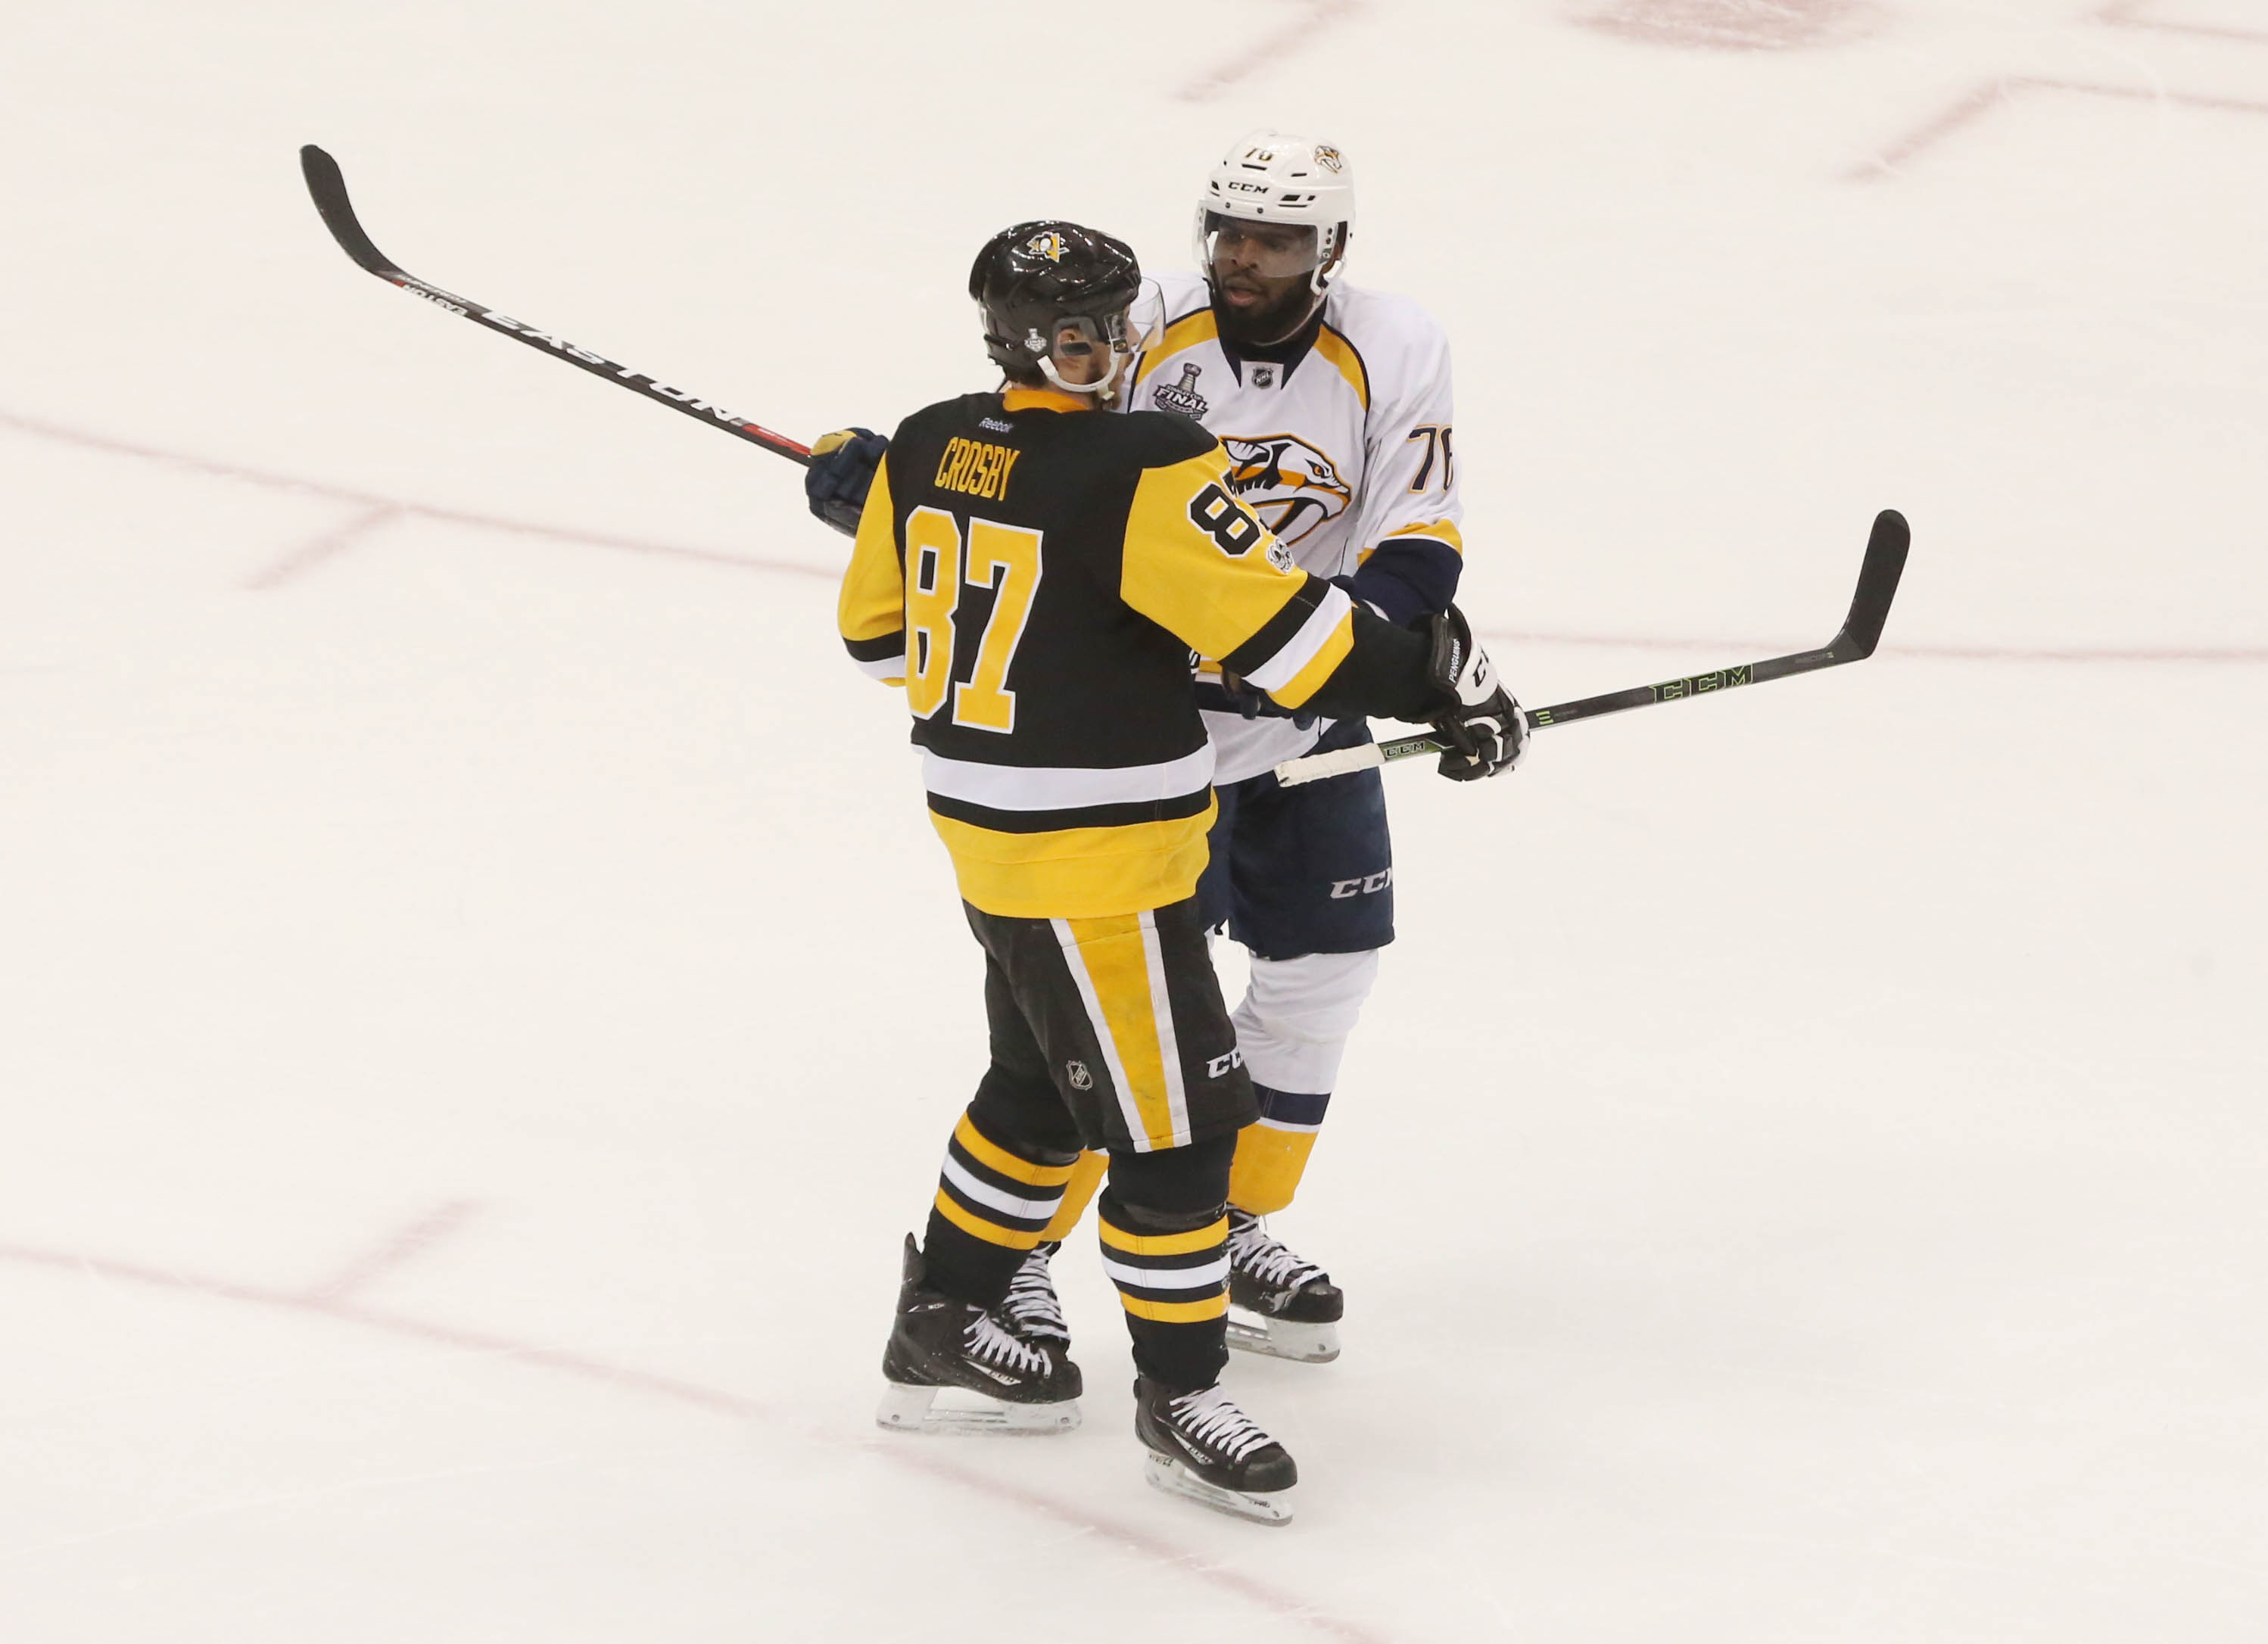 10083728-nhl-stanley-cup-final-nashville-predators-at-pittsburgh-penguins